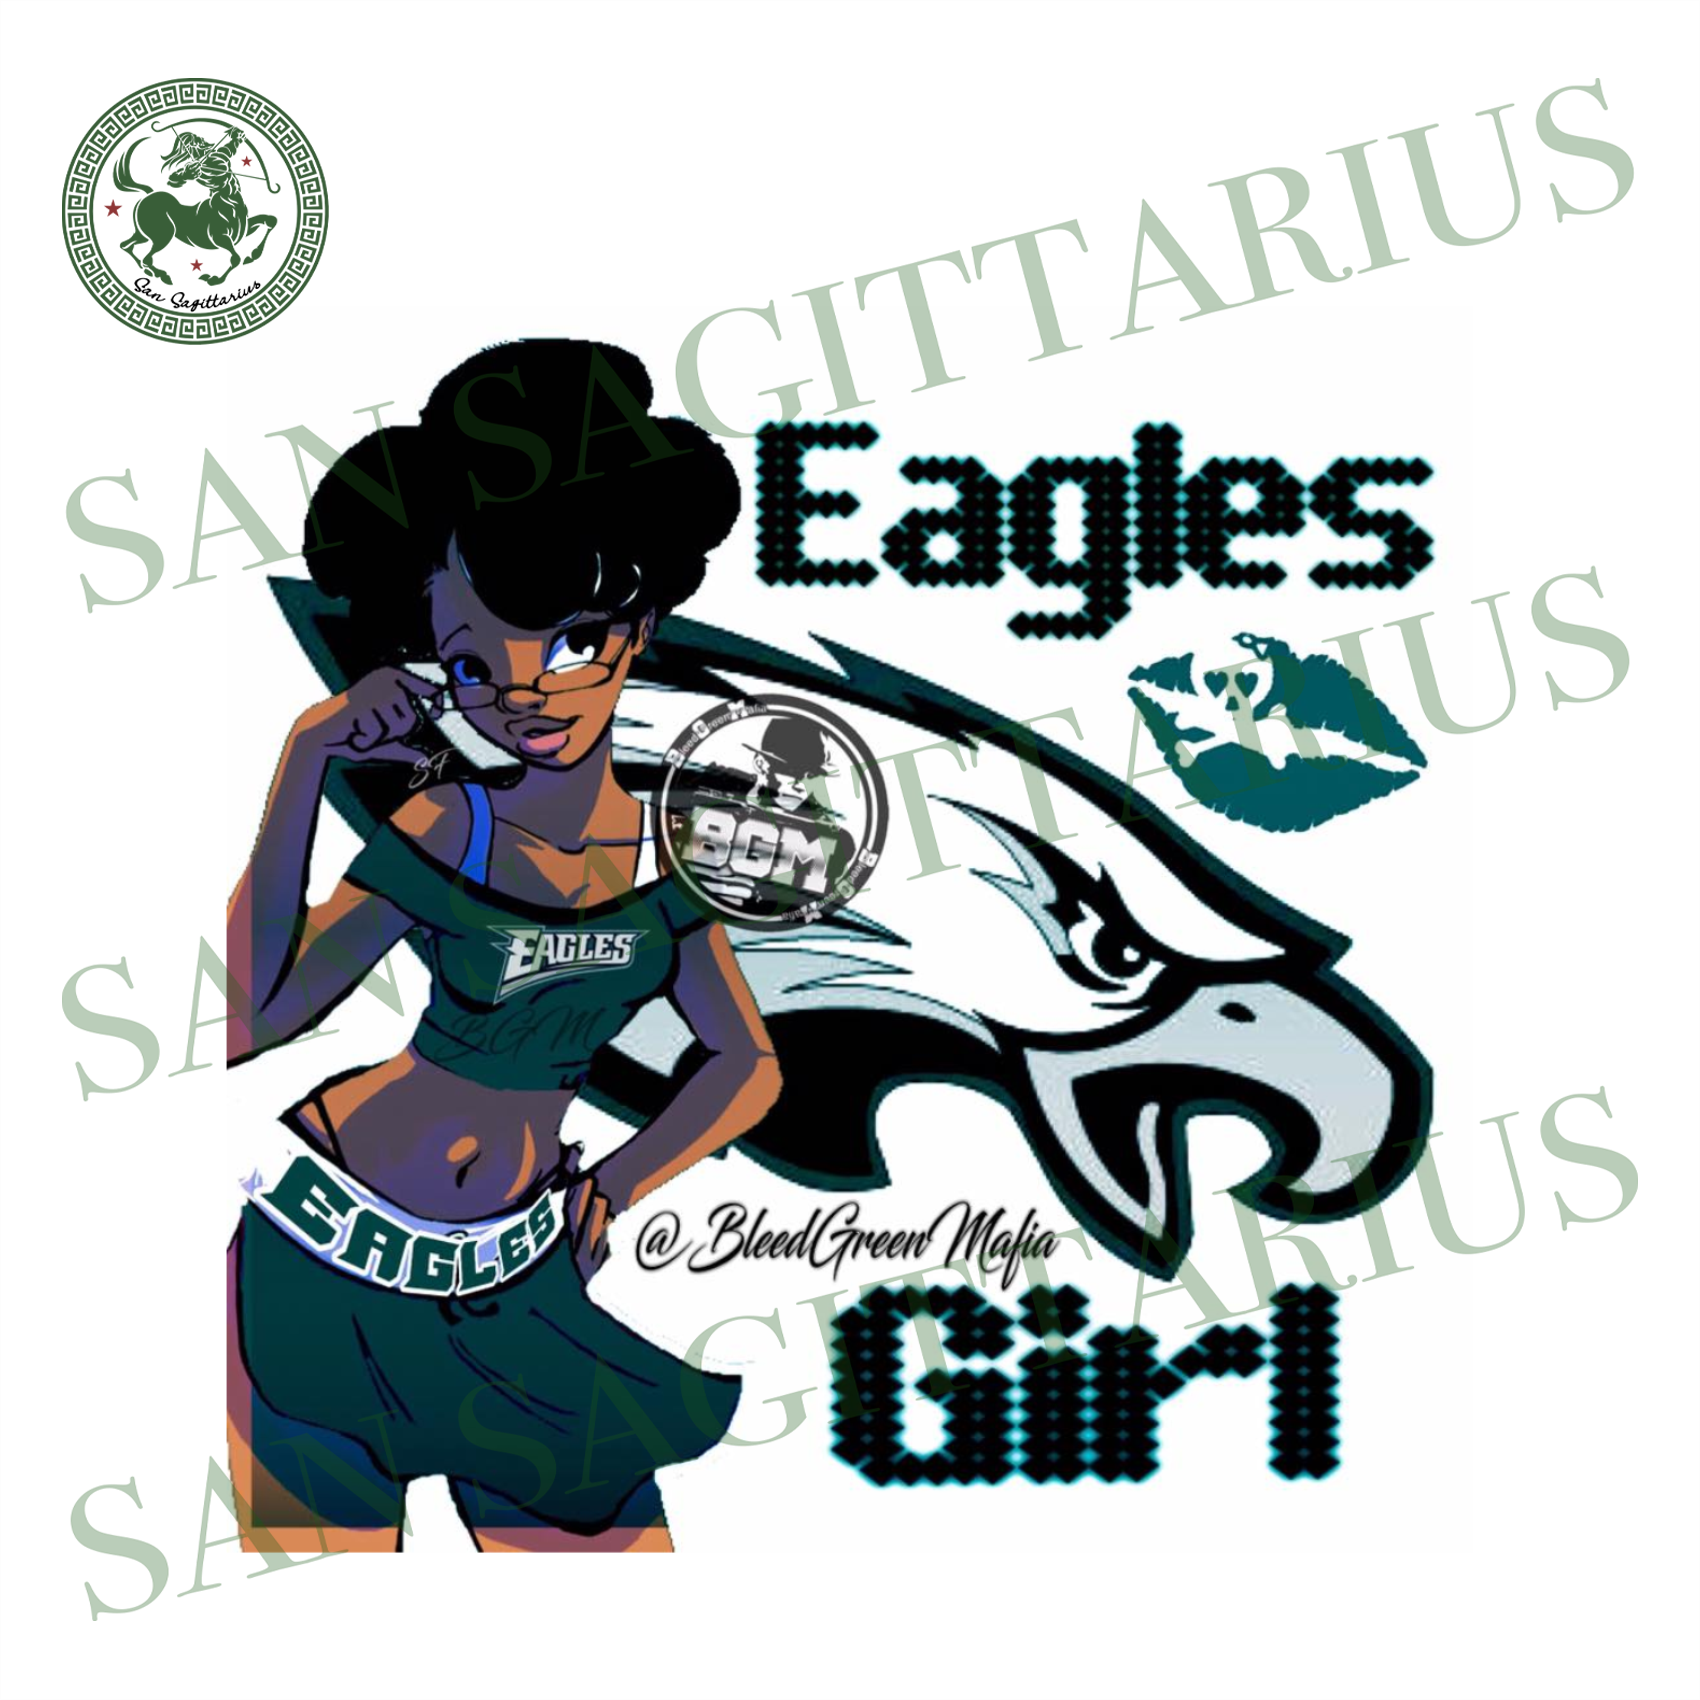 Eagles Girl, Sport Svg, Philadelphia Eagles Logo Svg, Eagles Girl Svg, Philadelphia Svg, Philadelphia Eagles Logo, Philadelphia Shirt, Philadelphia Eagles Nfl, Football Svg File, Nfl Football